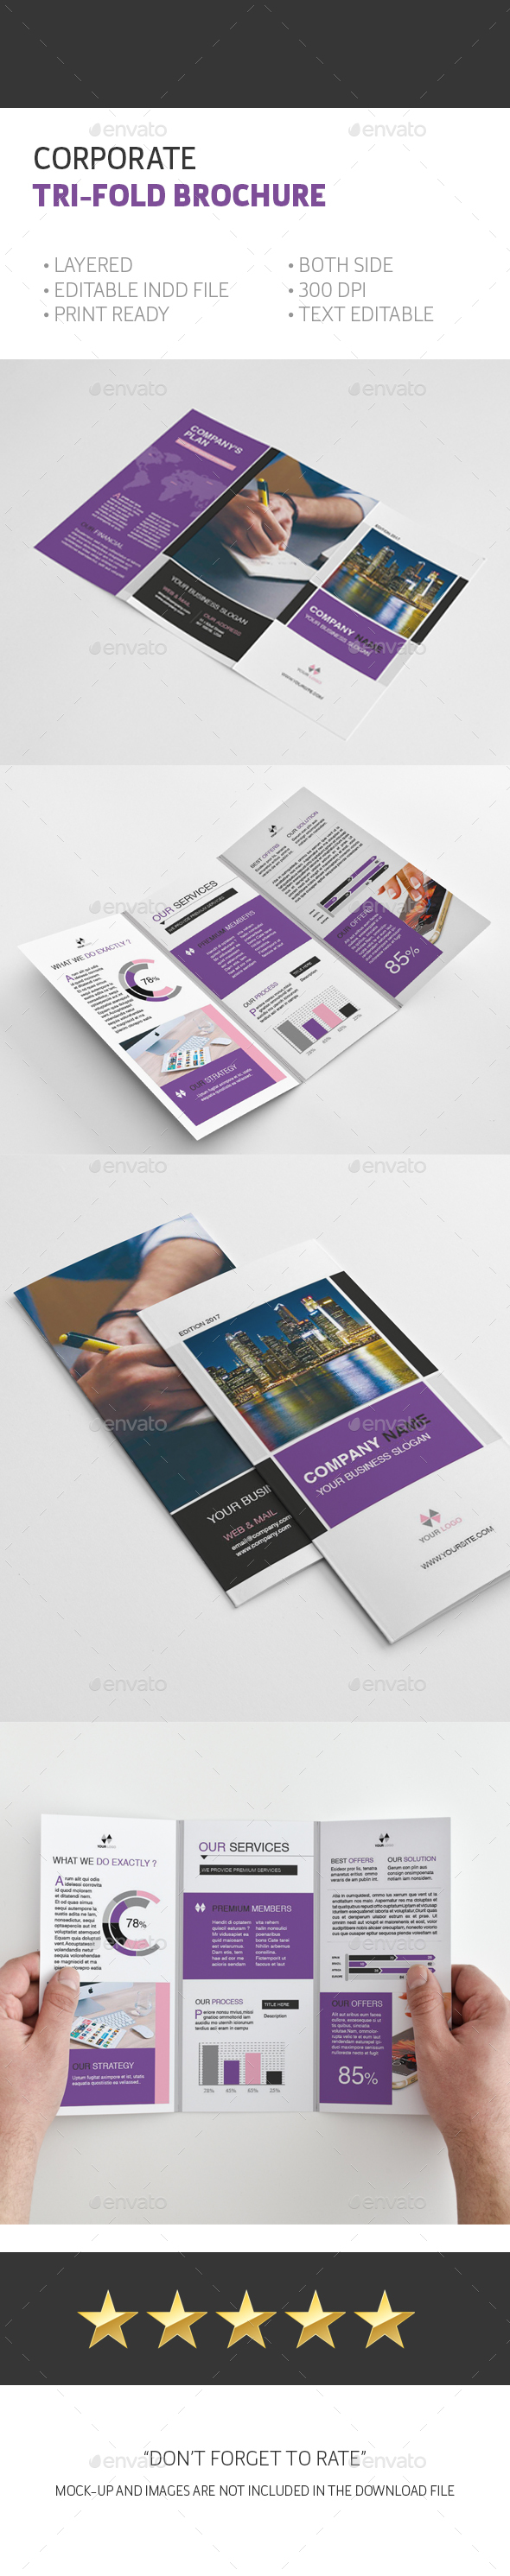 Trifold A4 brochure by Atabeyli | GraphicRiver